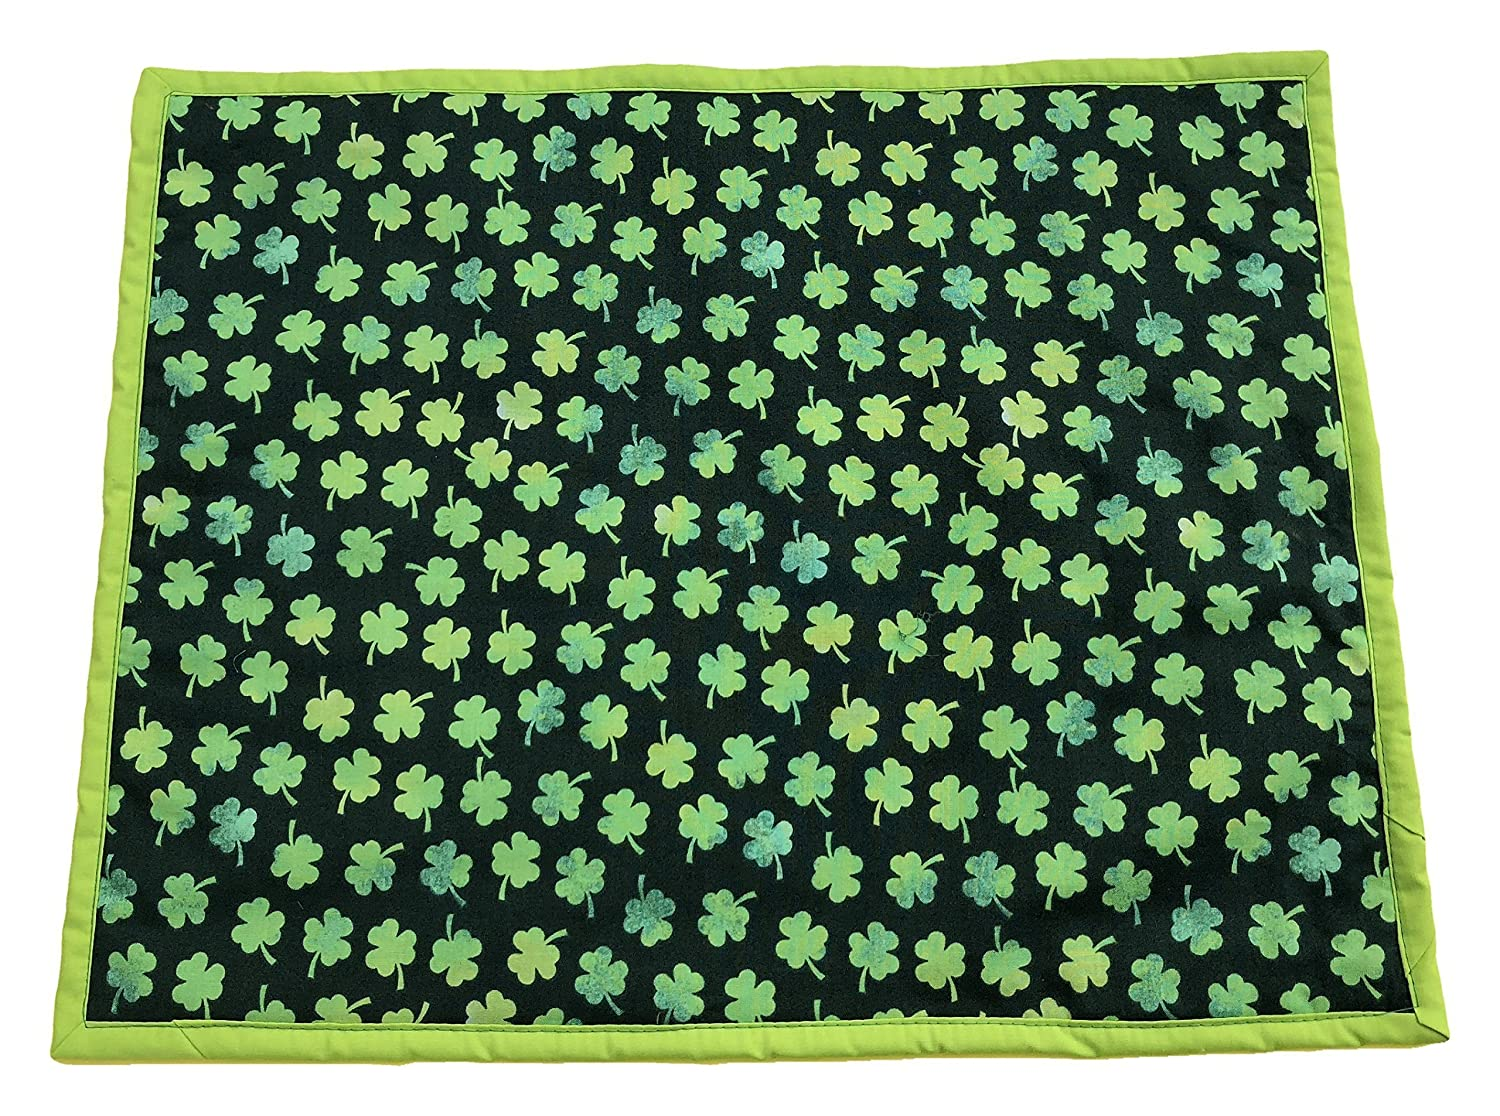 14 x18St Patricks Day Placemat Set of 2 Three Leaf Clover on Black Fabric